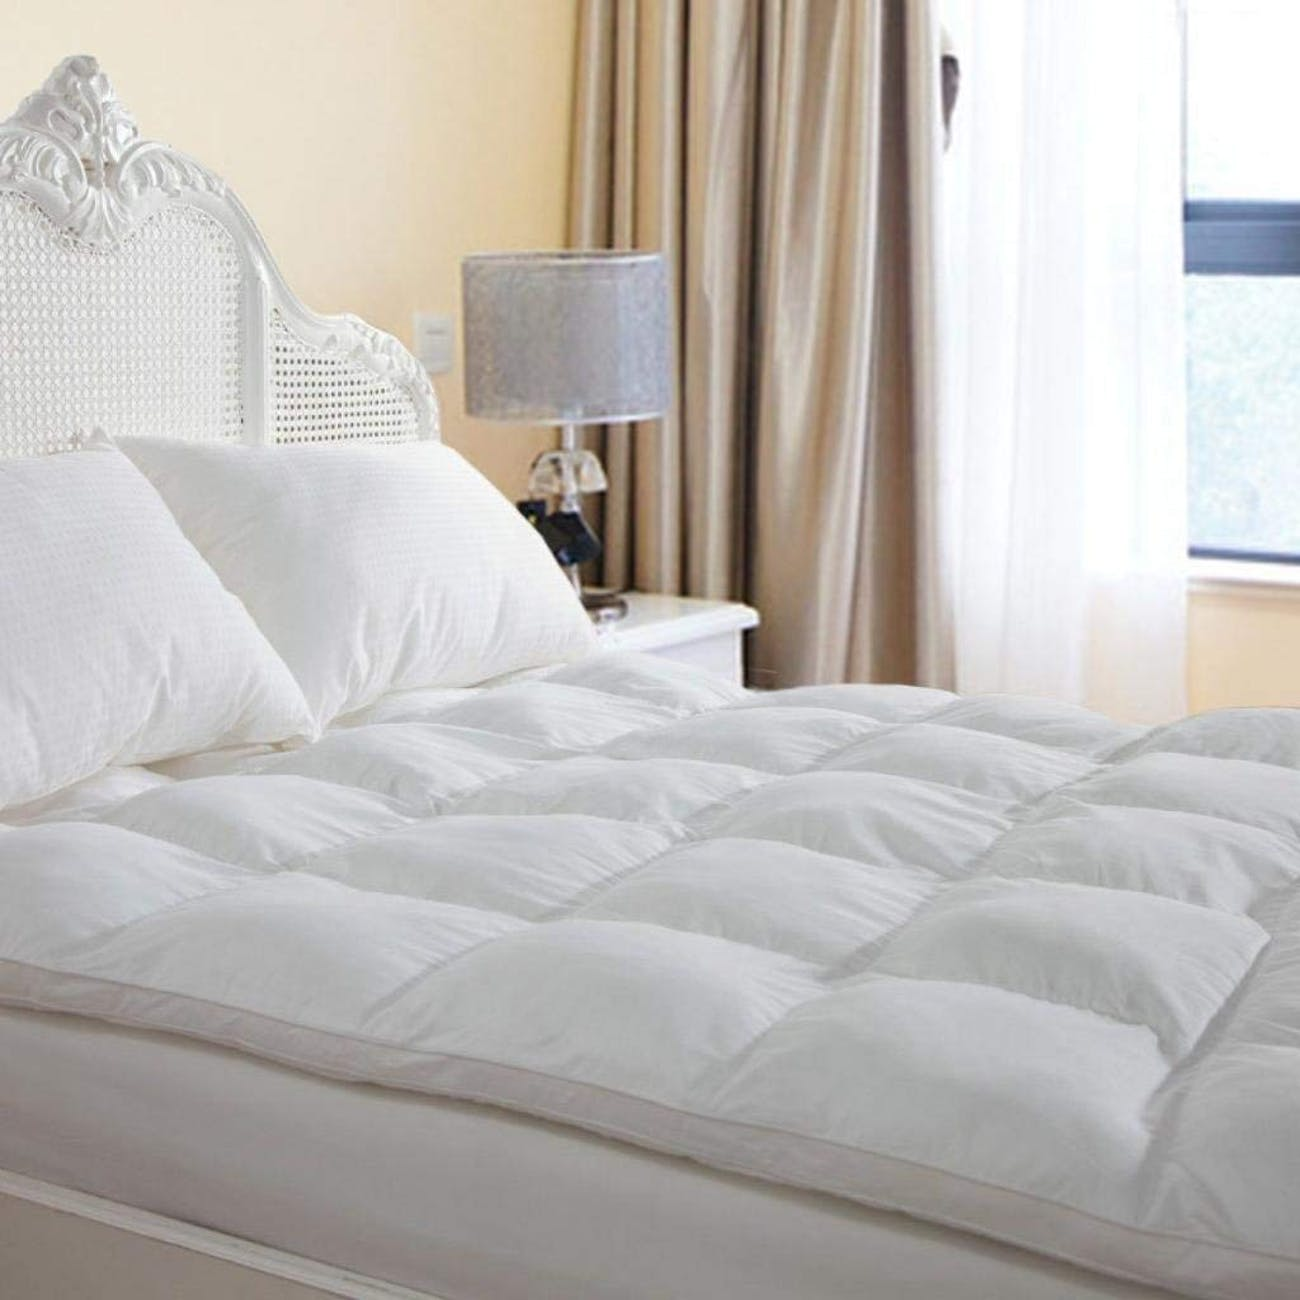 Best Mattress Topper.The Best Mattress Toppers You Can Find On Amazon Inverse